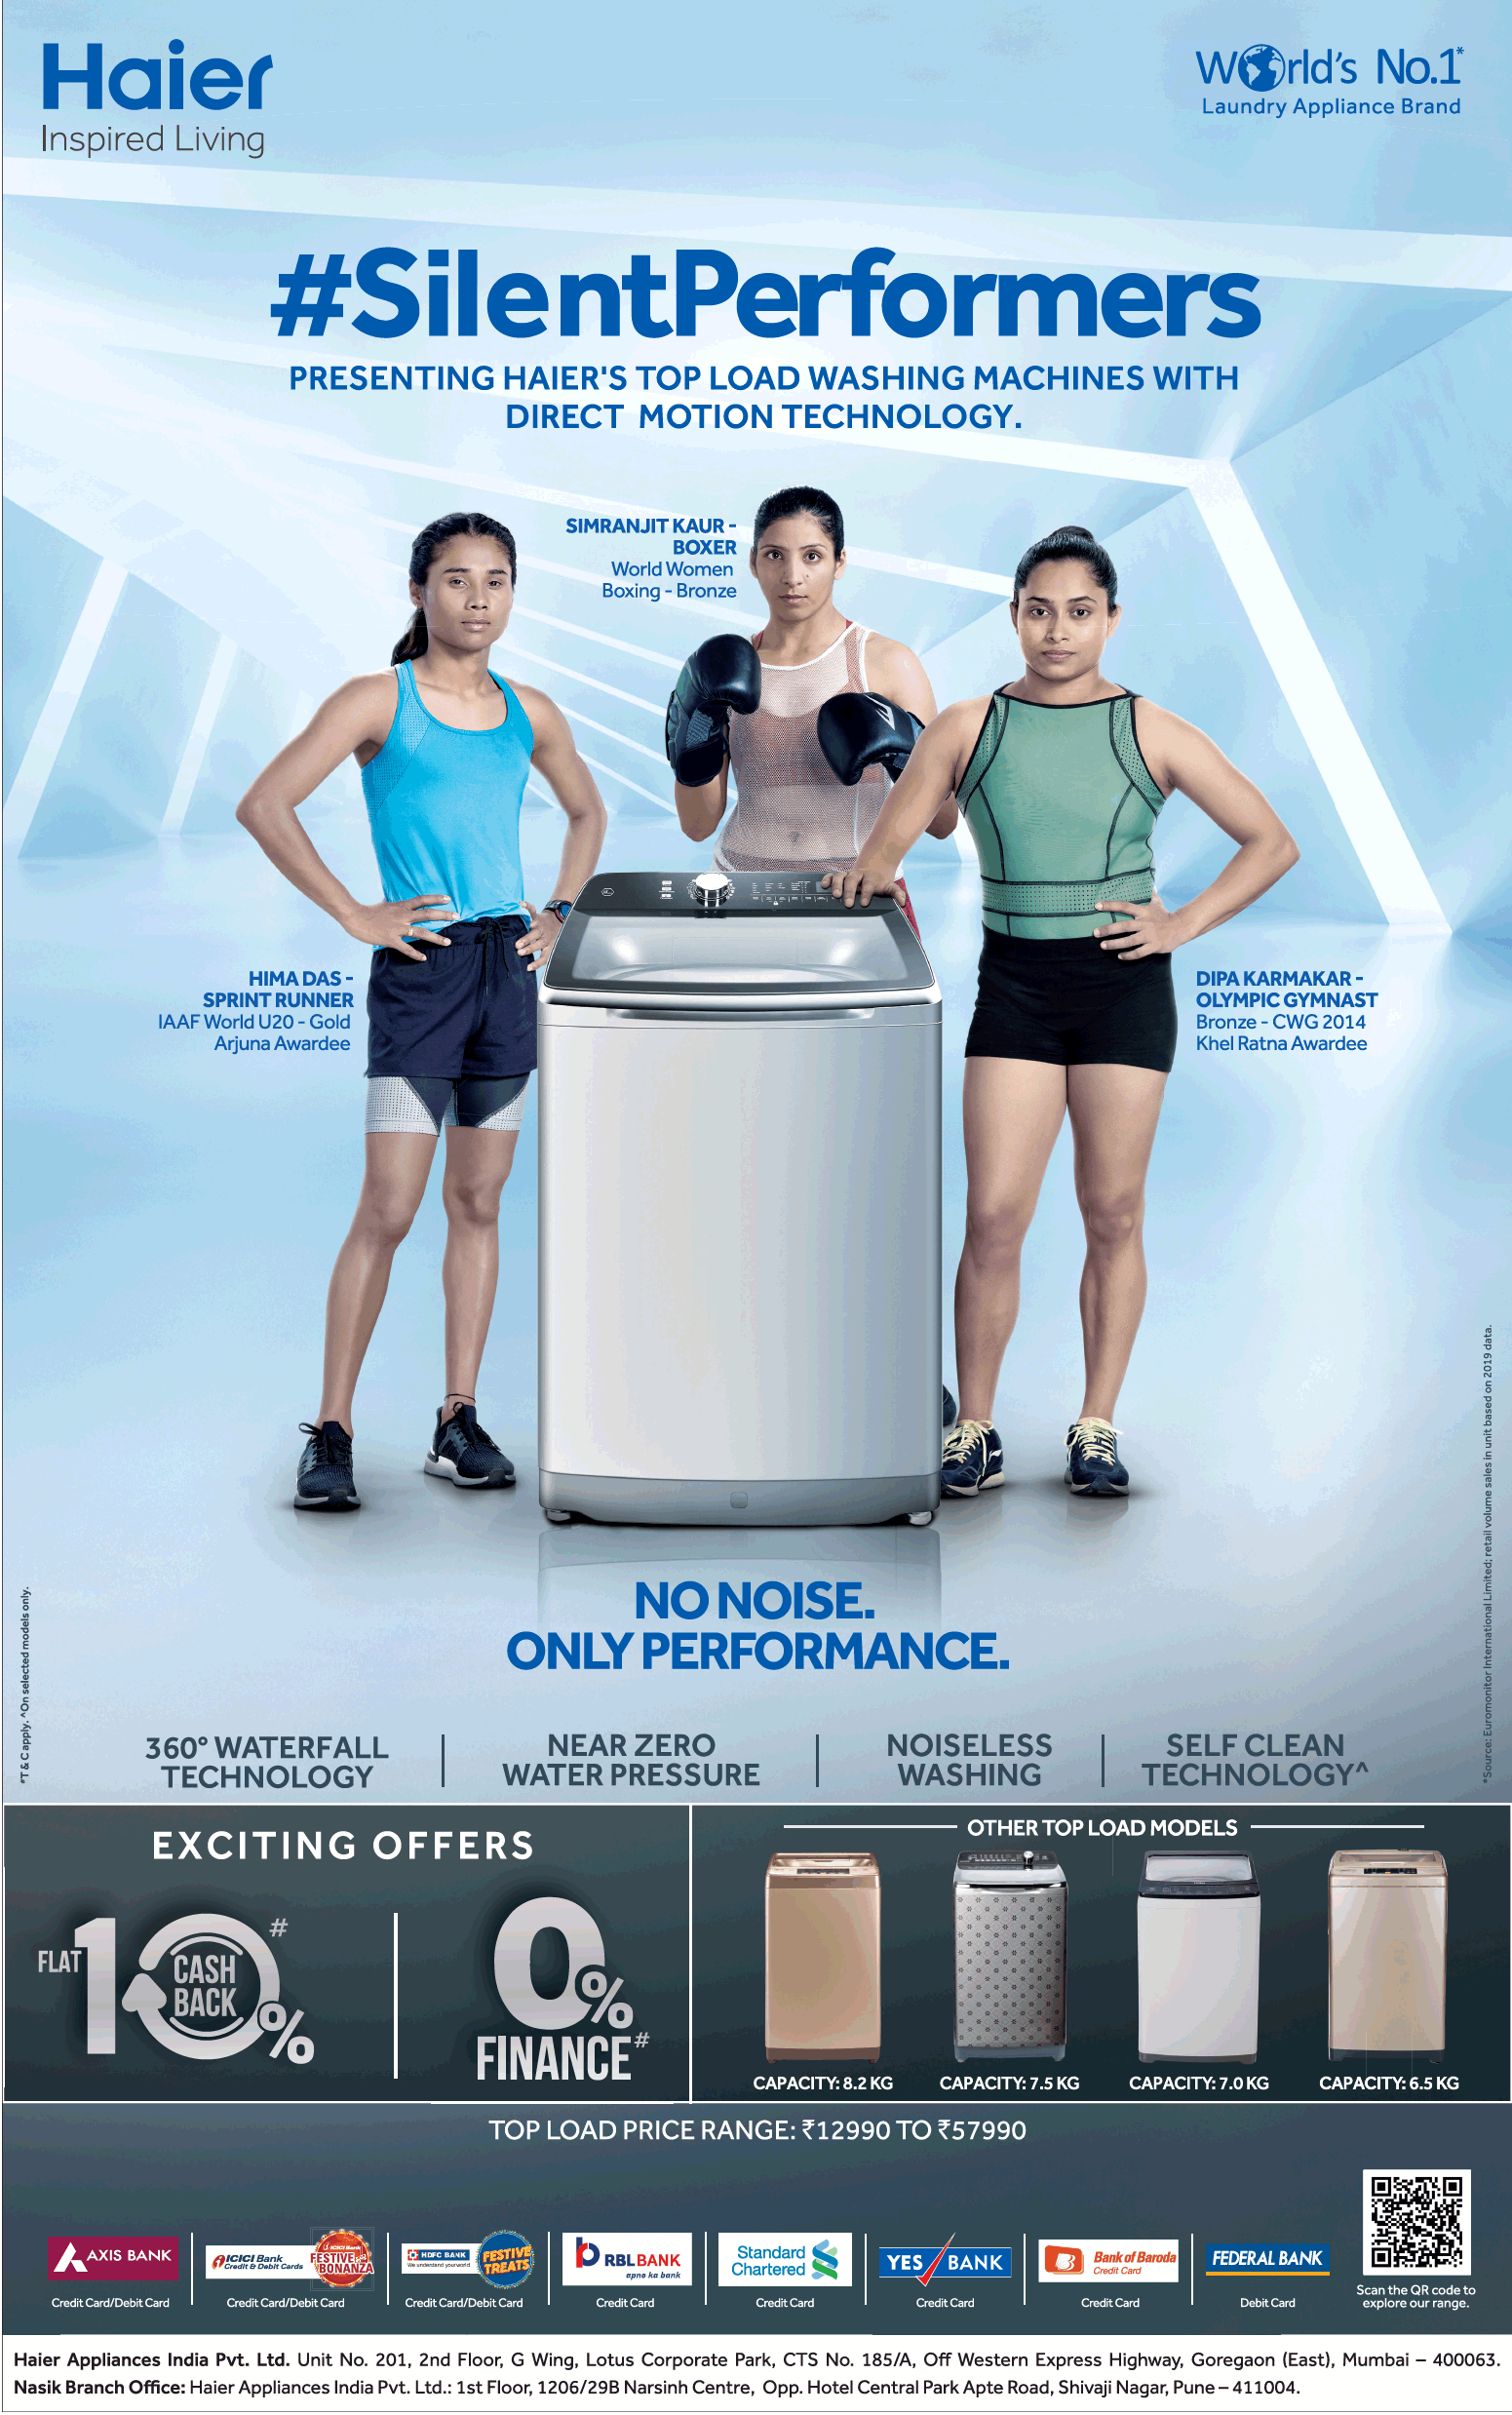 haier-silent-performers-presenting-haiers-top-load-washing-machines-with-direct-motion-technology-ad-toi-mumbai-31-10-2020